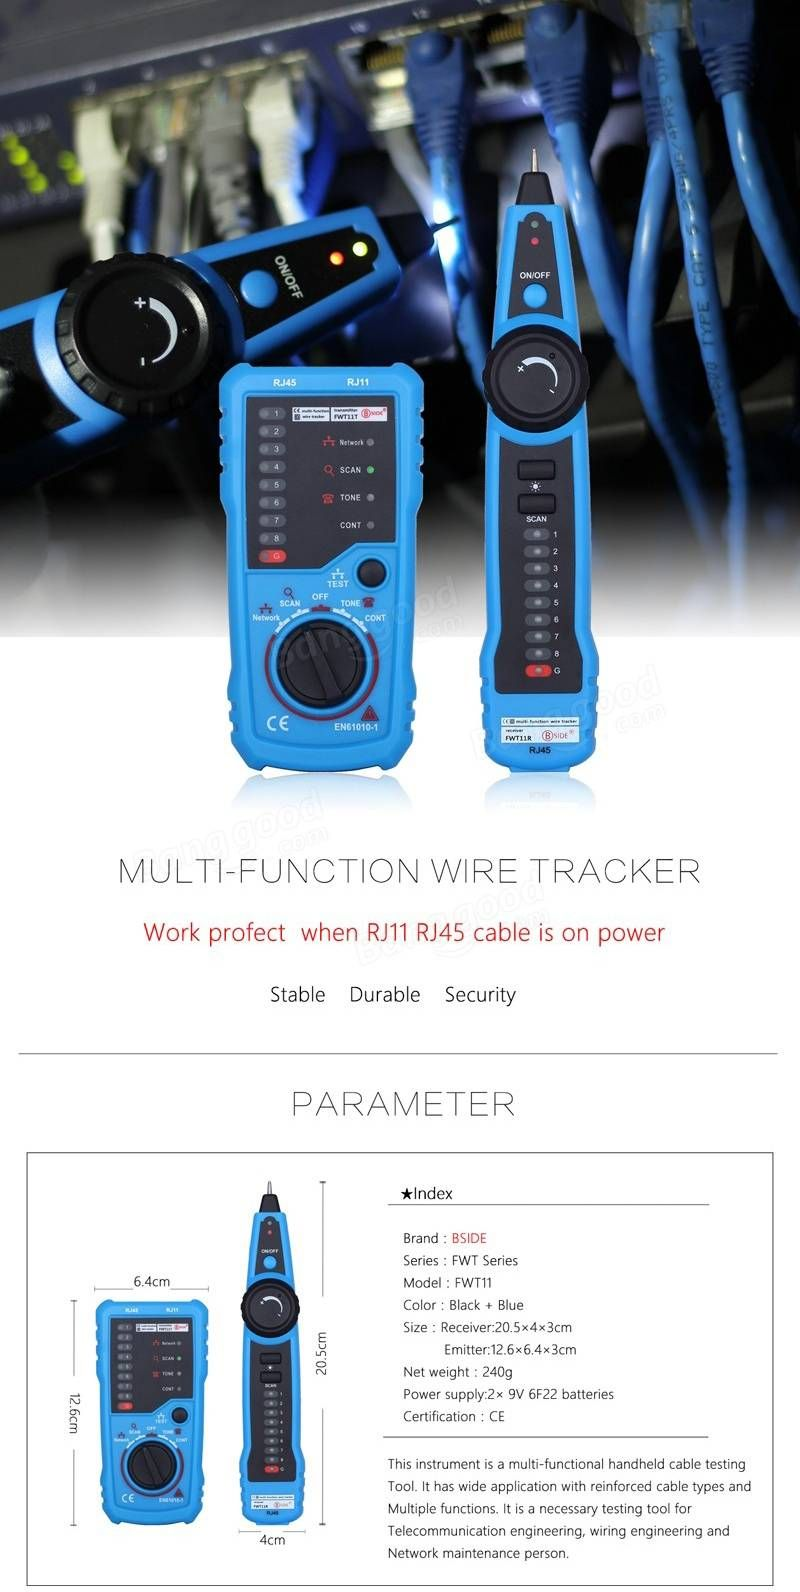 Bside Fwt11 Rj11 Rj45 Wire Tracker Tracer Telephone Ethernet Lan Cable Wiring Network Continuity Tester Detector Sale